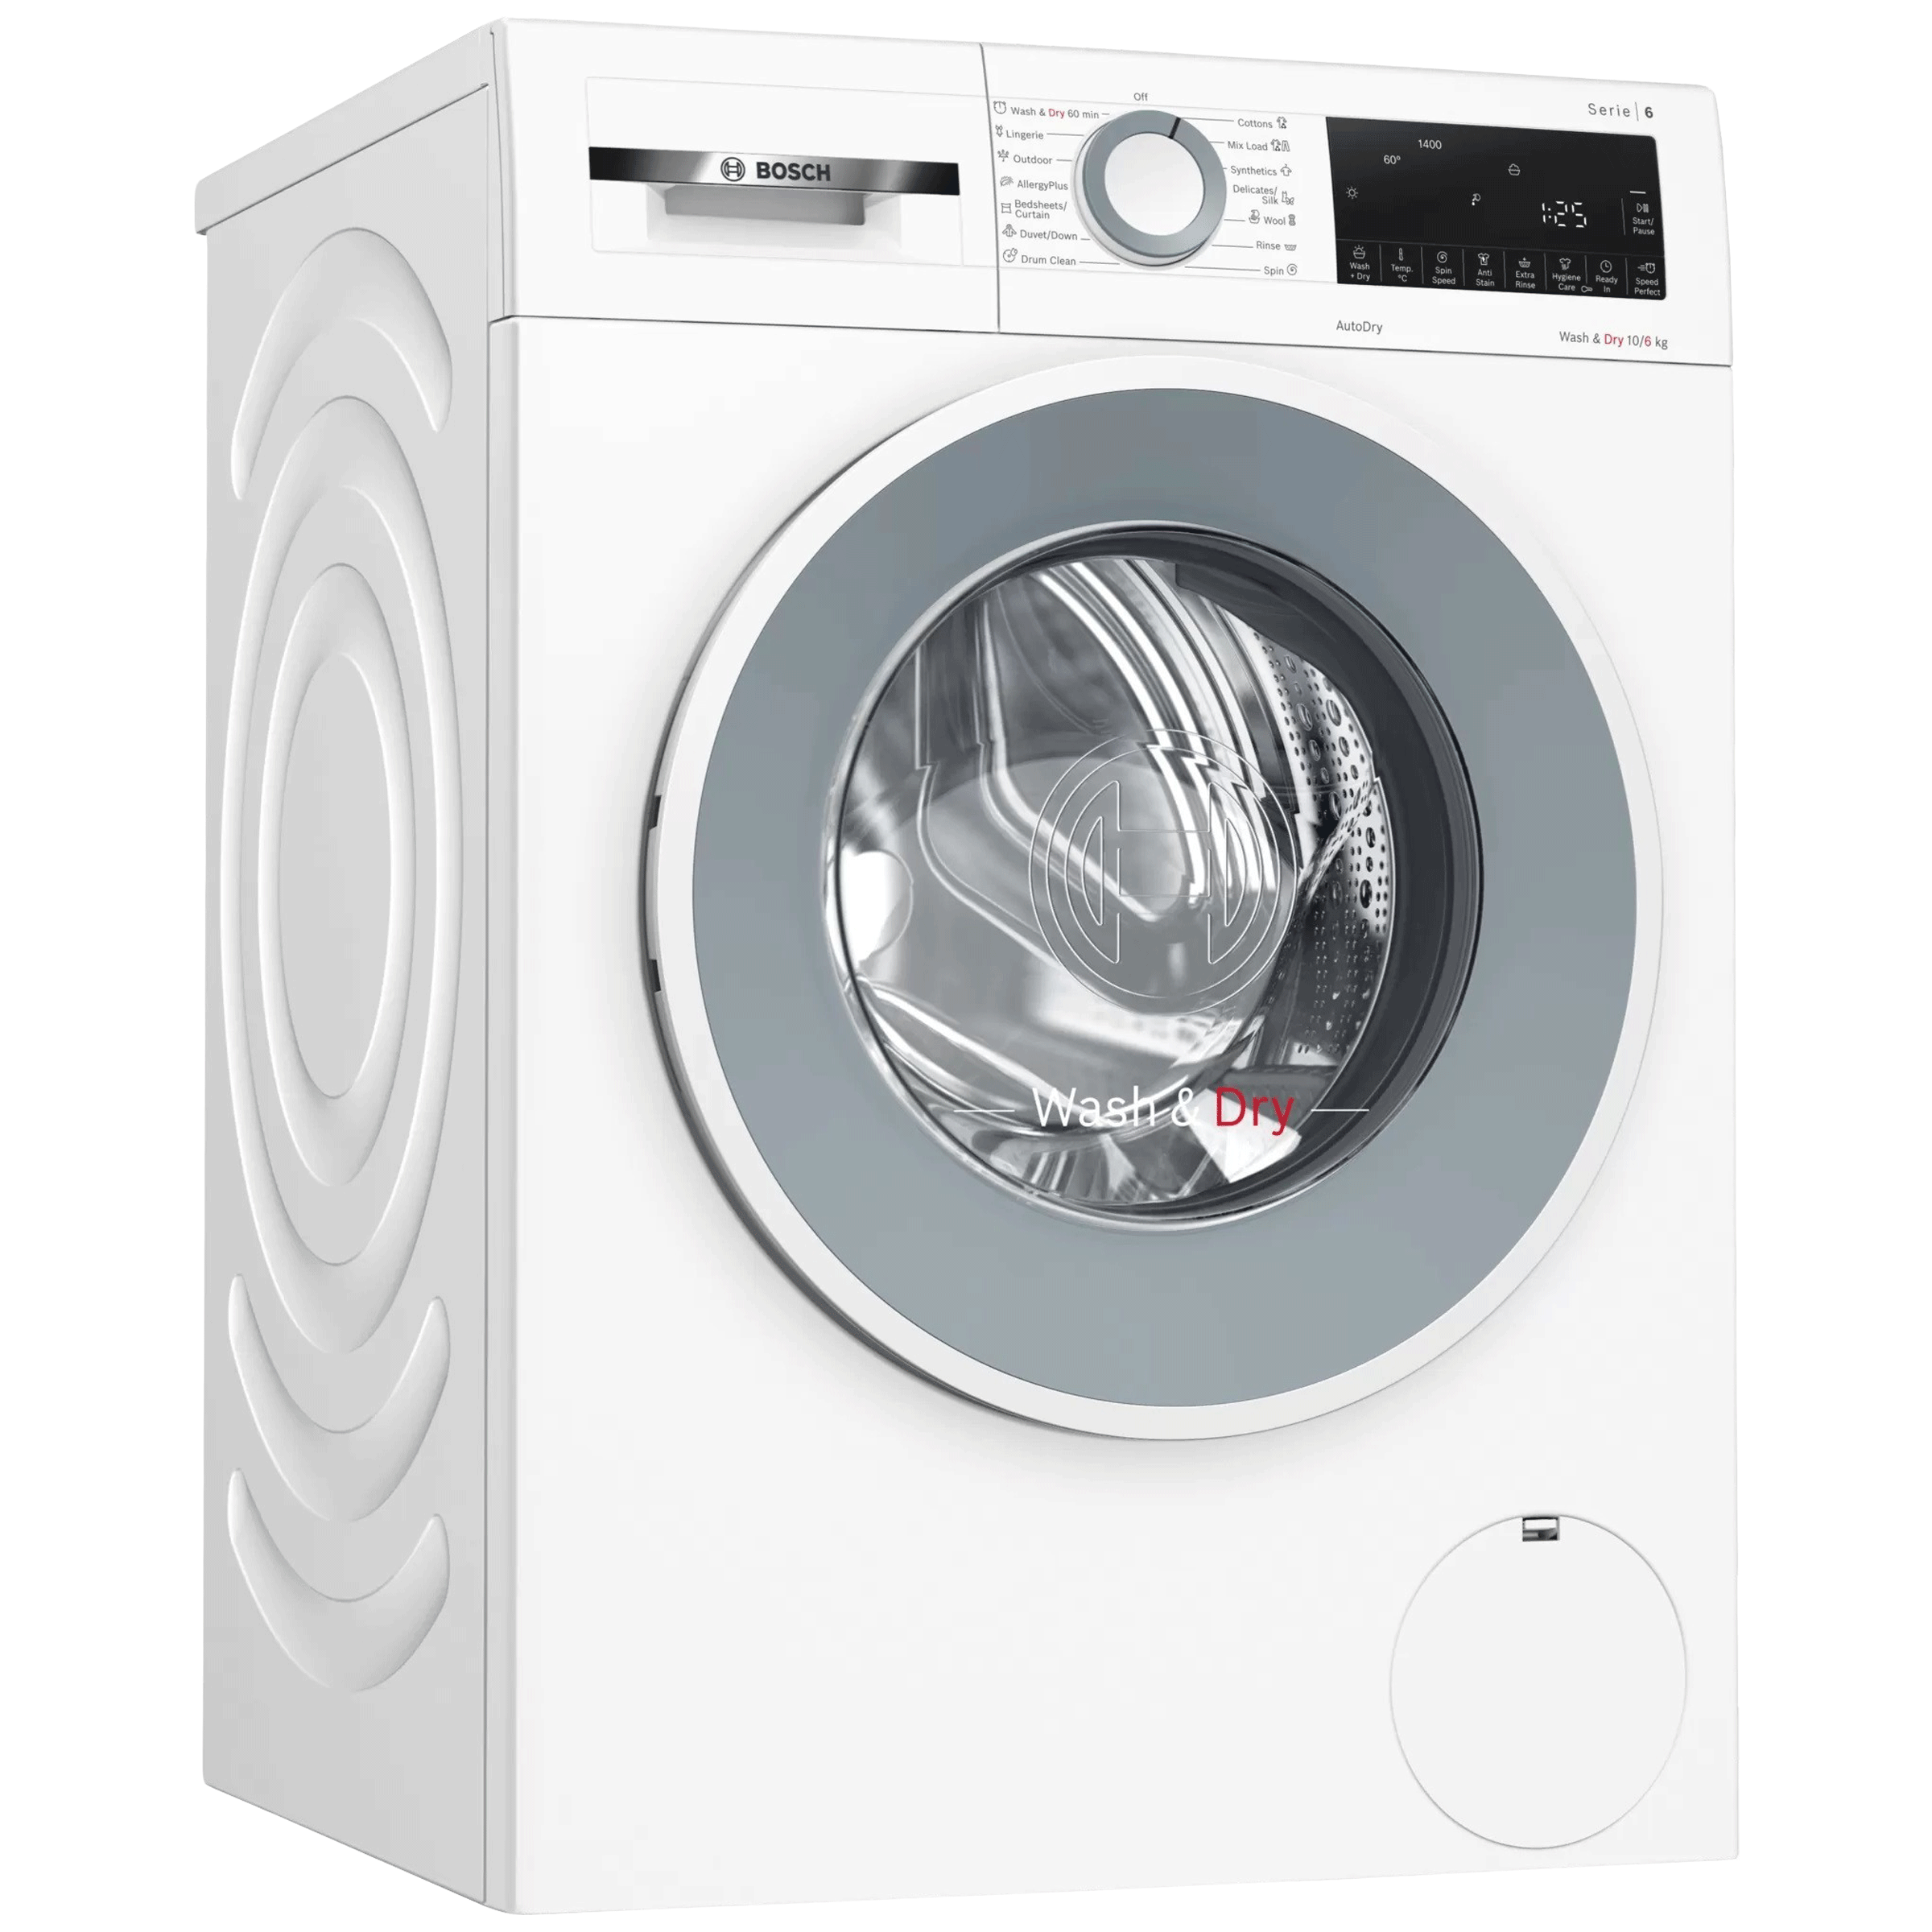 BOSCH Serie 6 10 kg/6kg Fully Automatic Front Load Washer Dryer Combo (In-built Heater, WNA254U0IN, White)_1